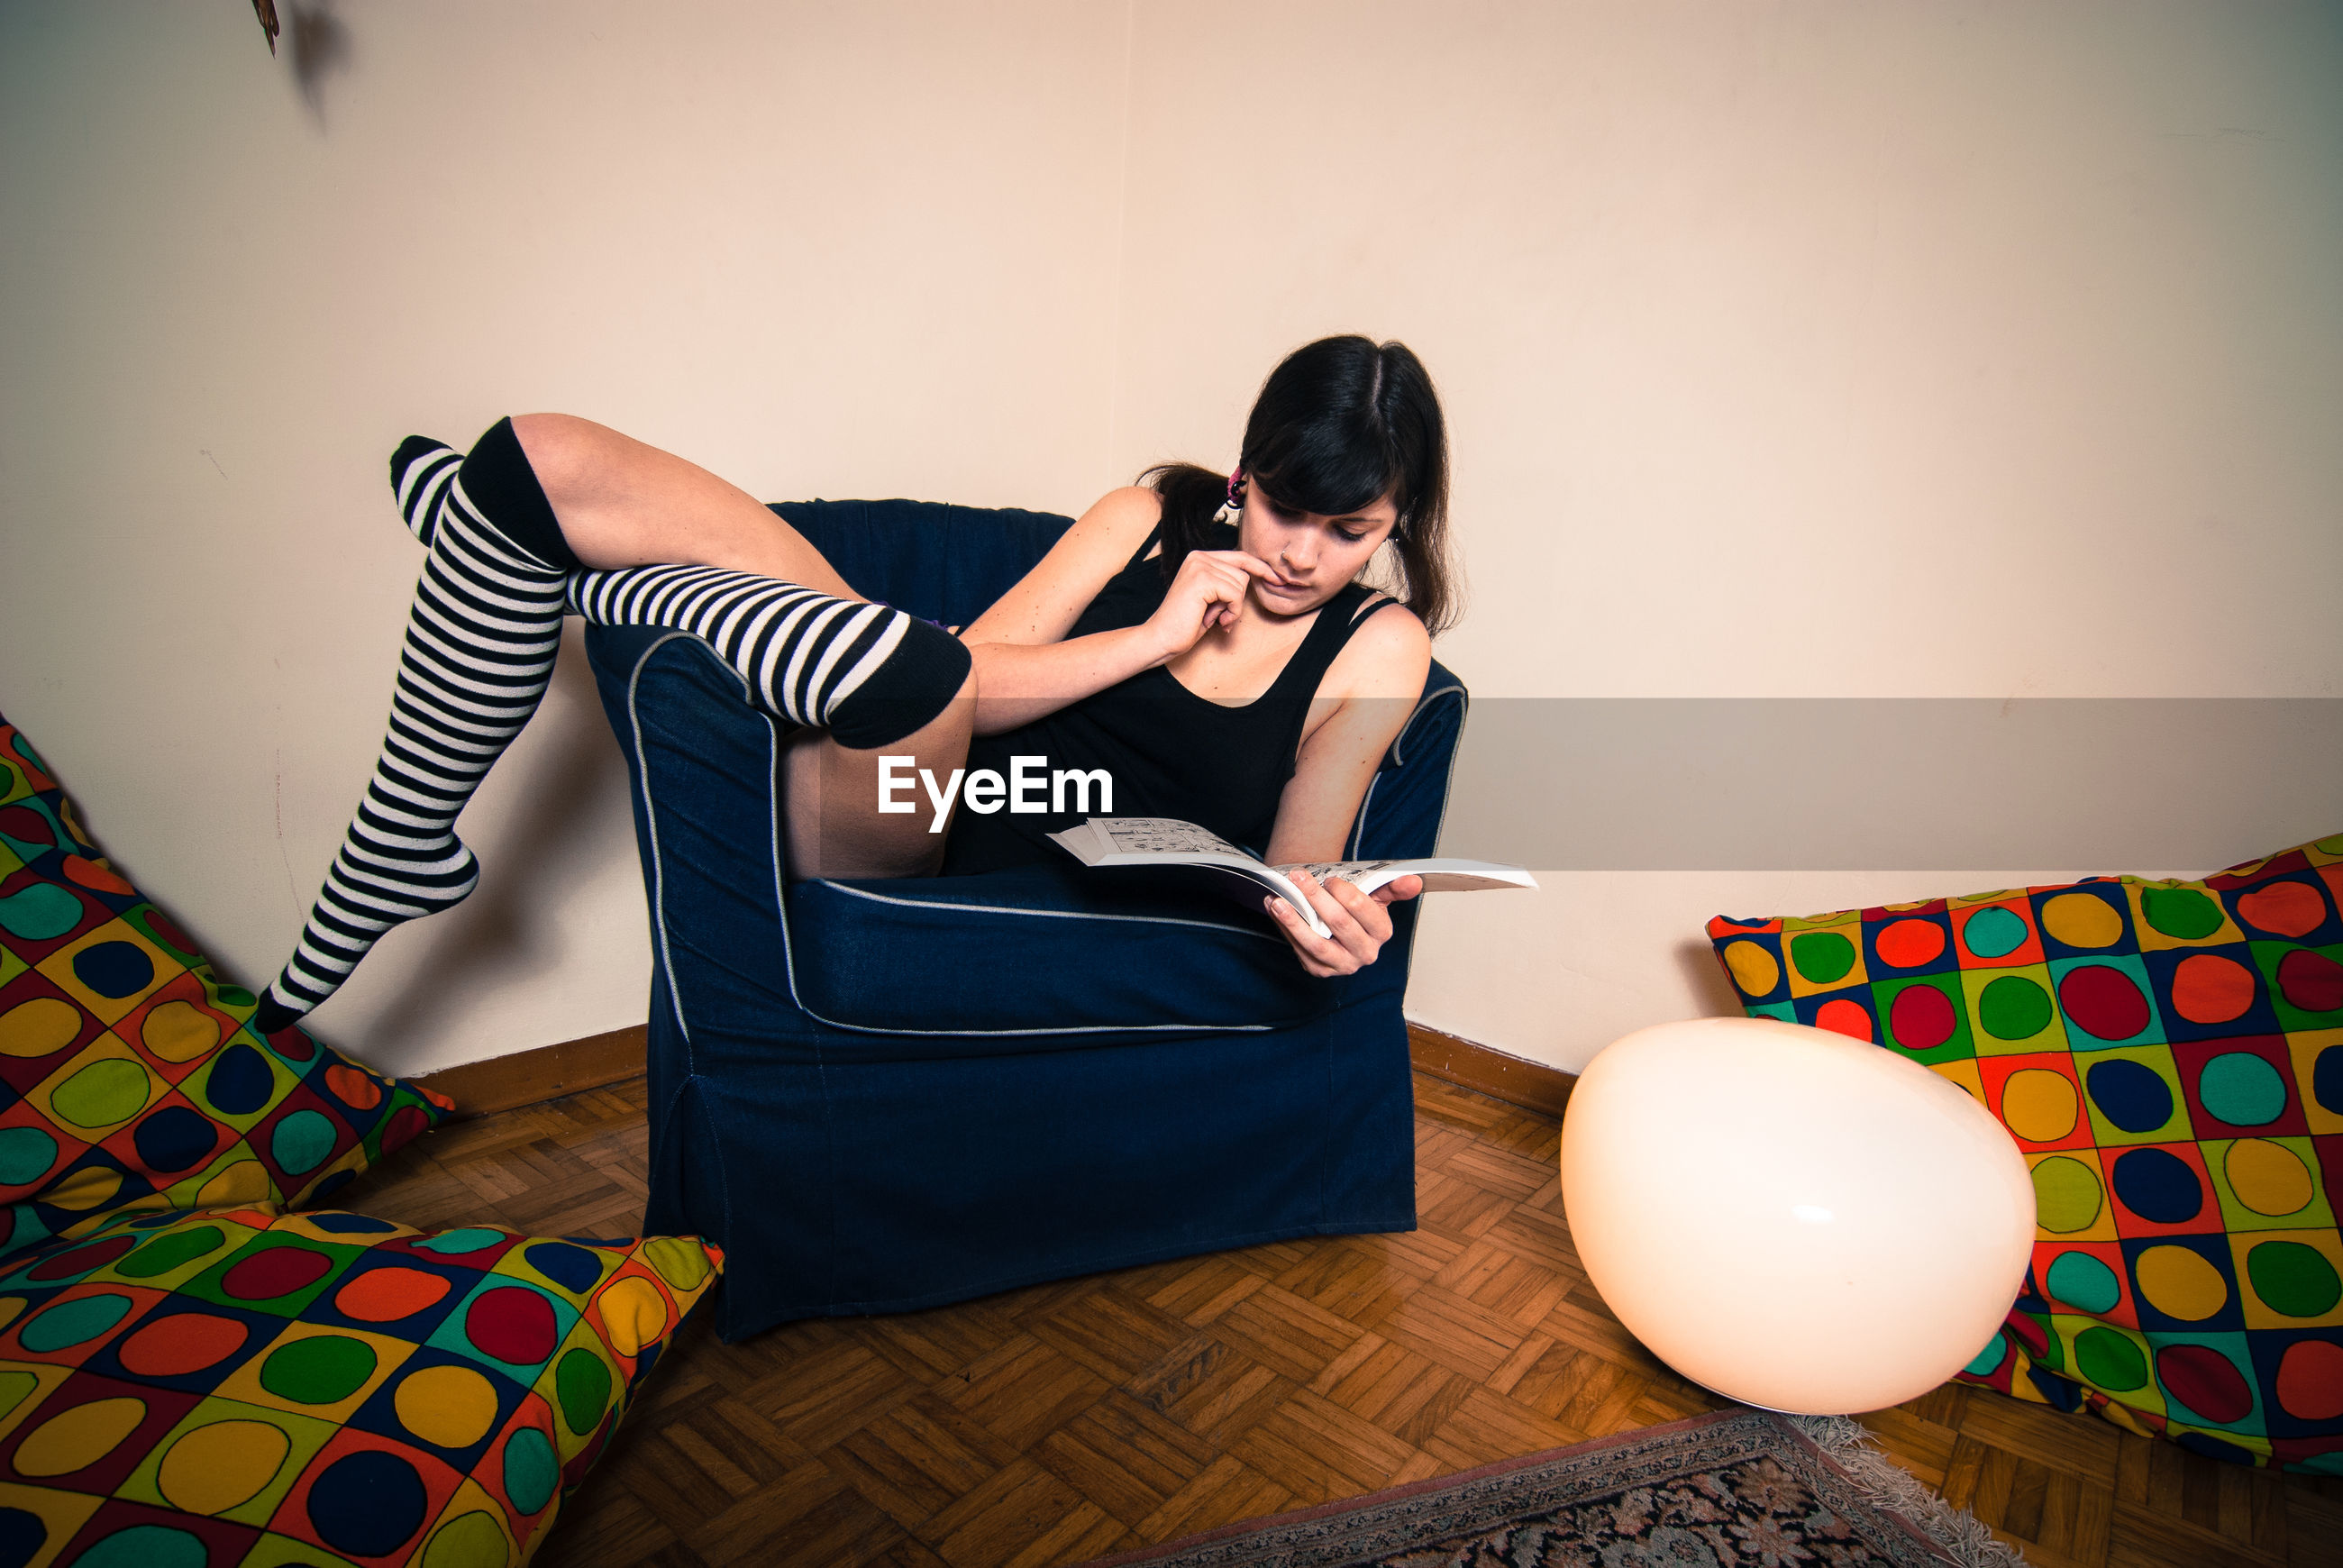 Young woman reading book while relaxing on chair at home